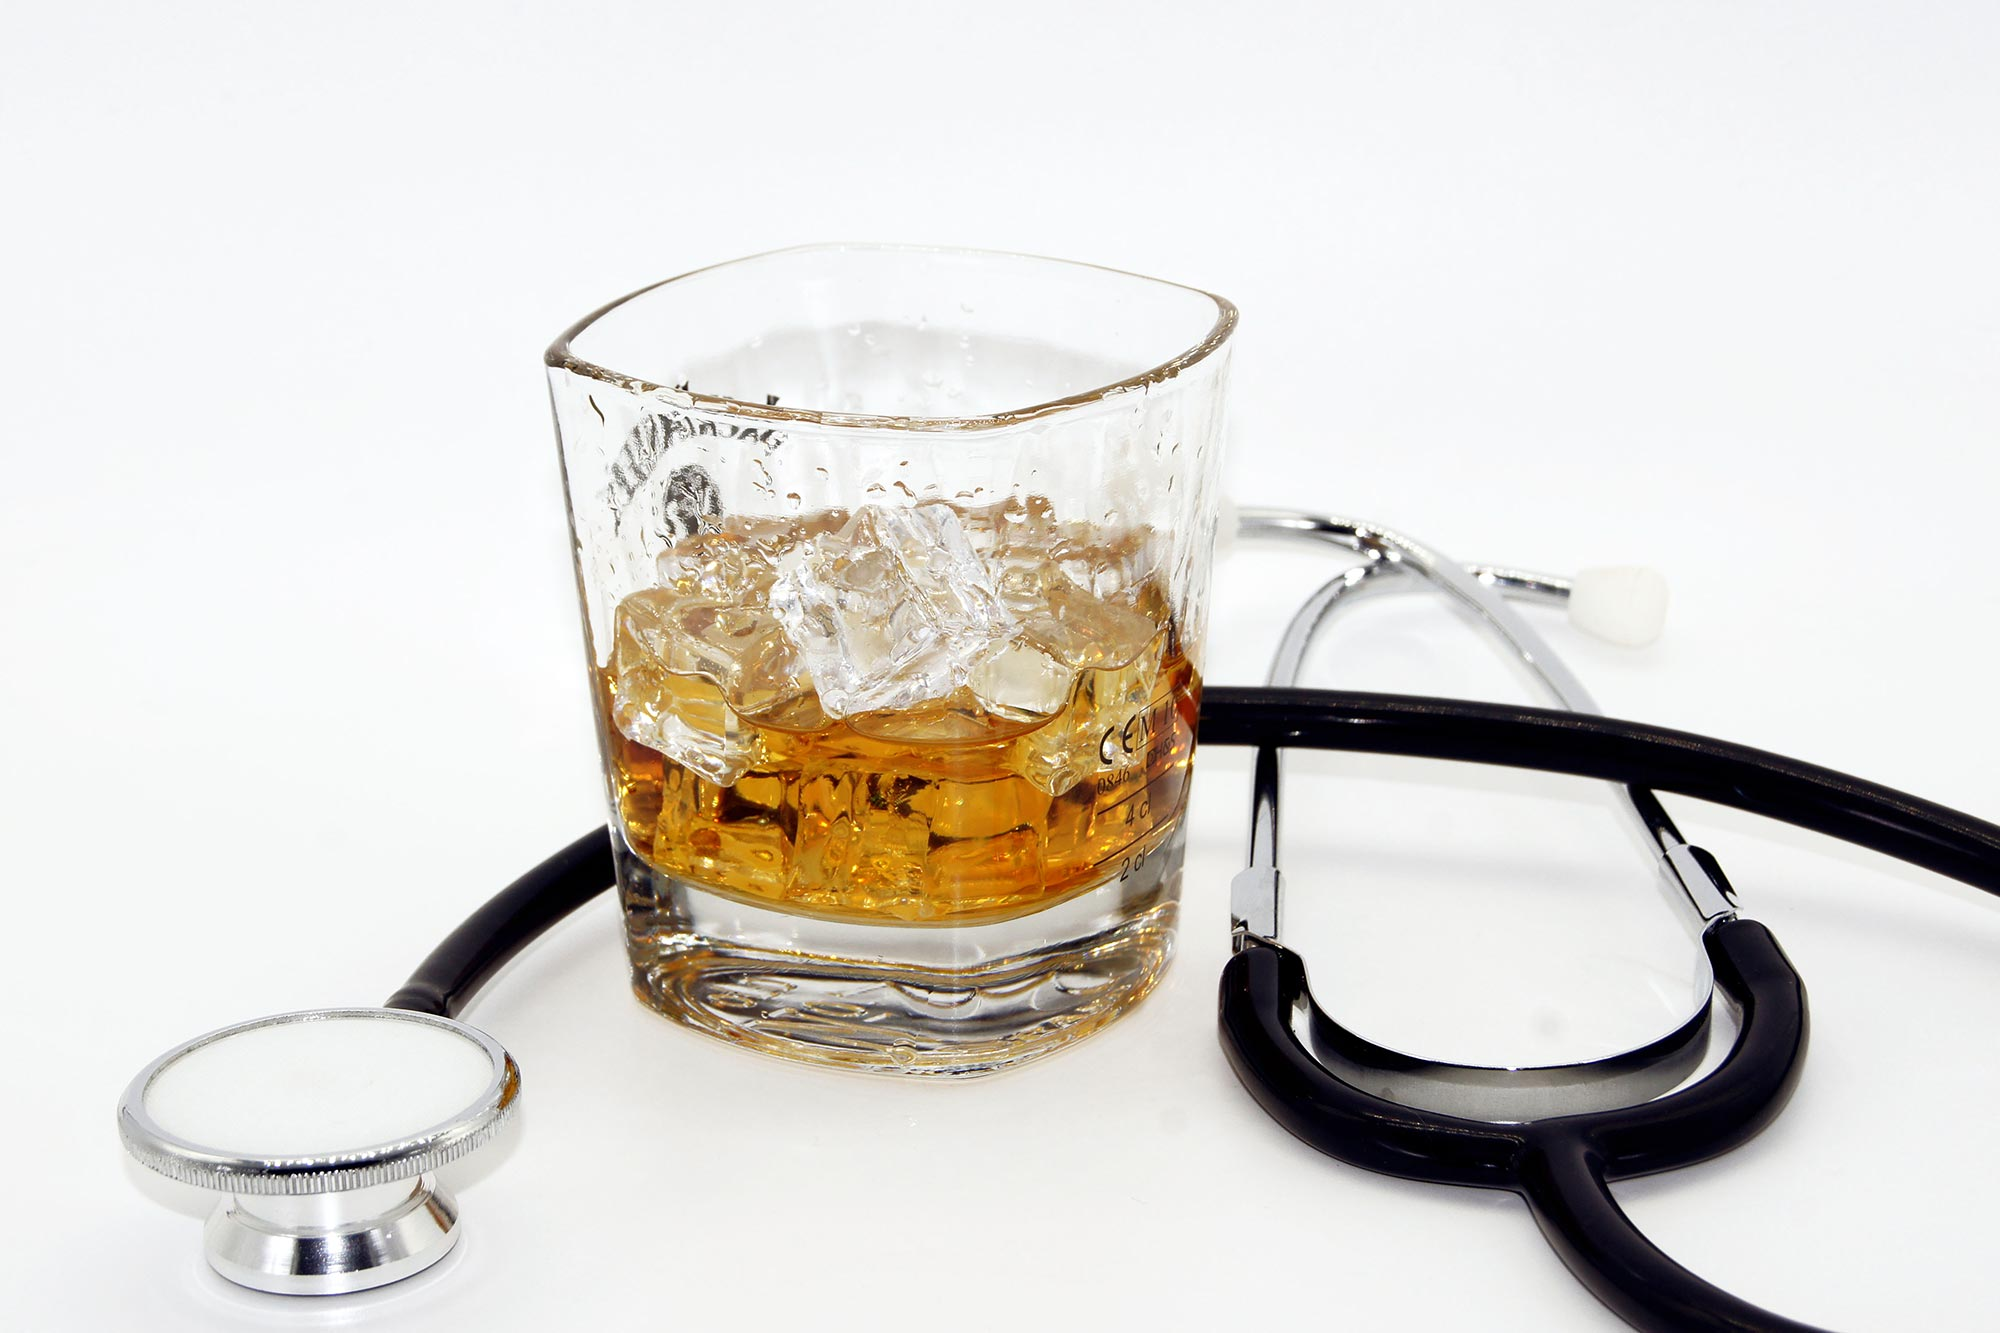 GPs Stopped Giving Alcohol Advice to Patients When They Stopped Being Paid to Do So